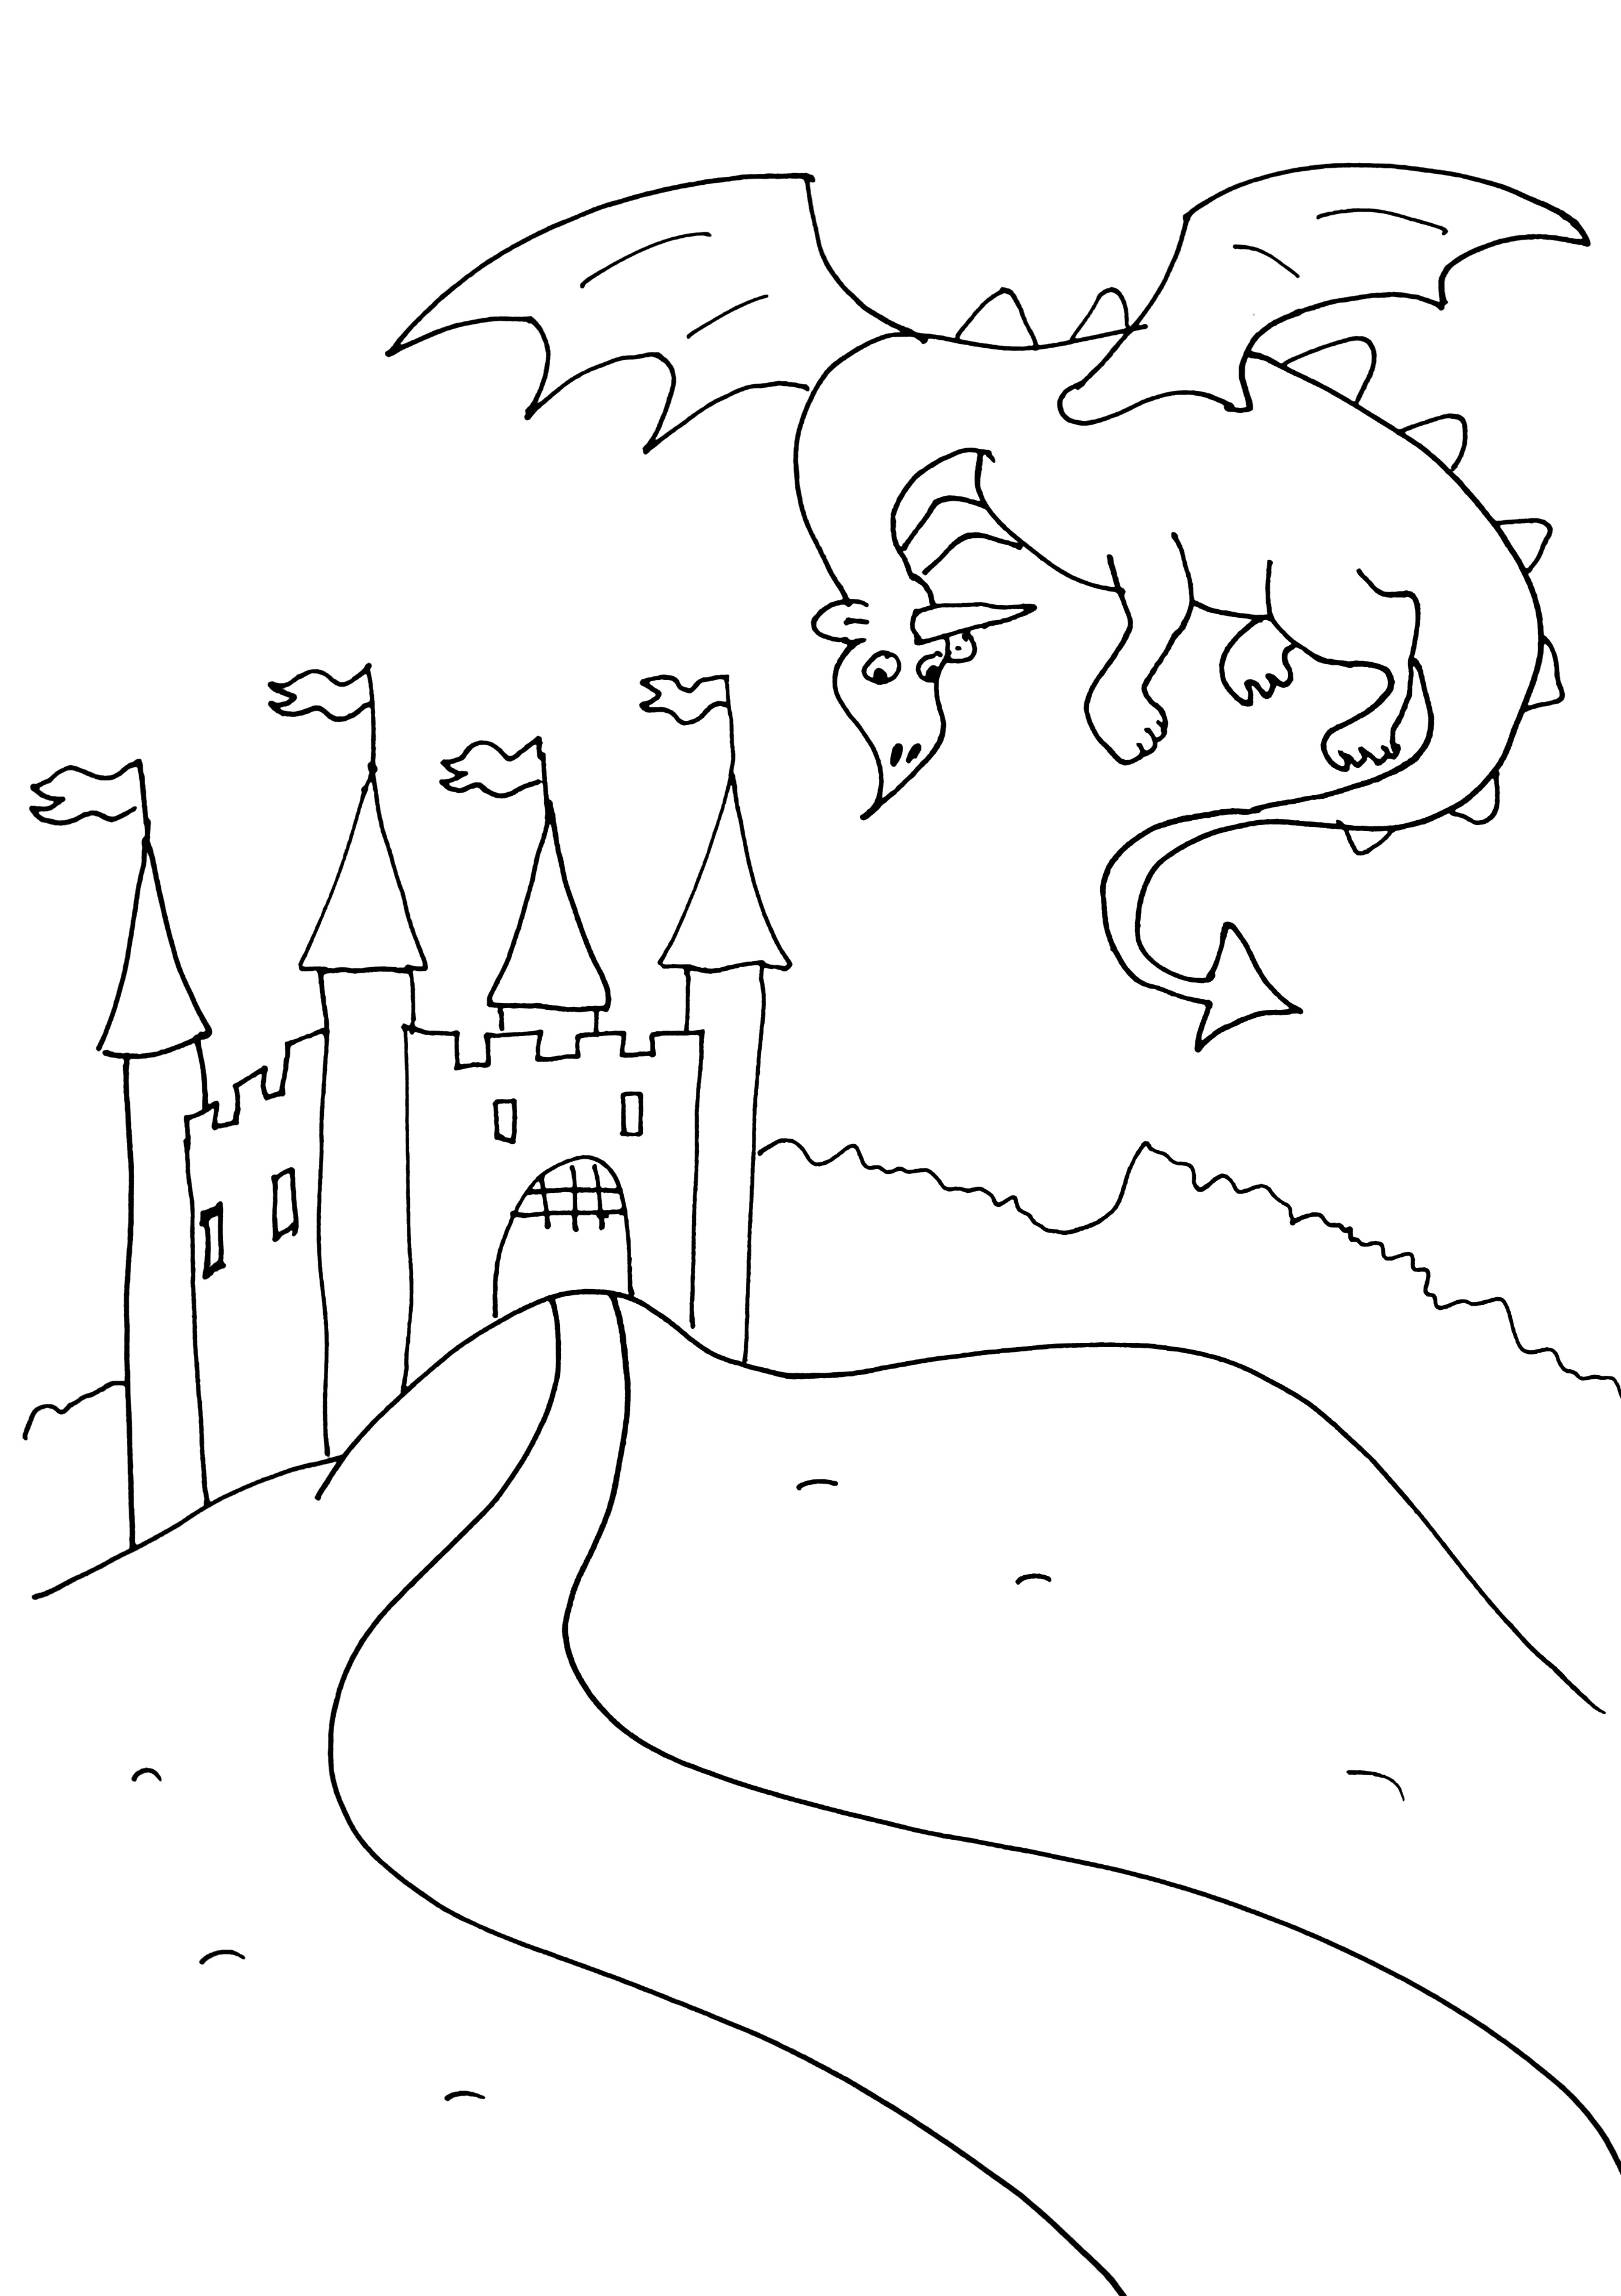 Printable Knights And Dragons Coloring Page To Print Color For Free